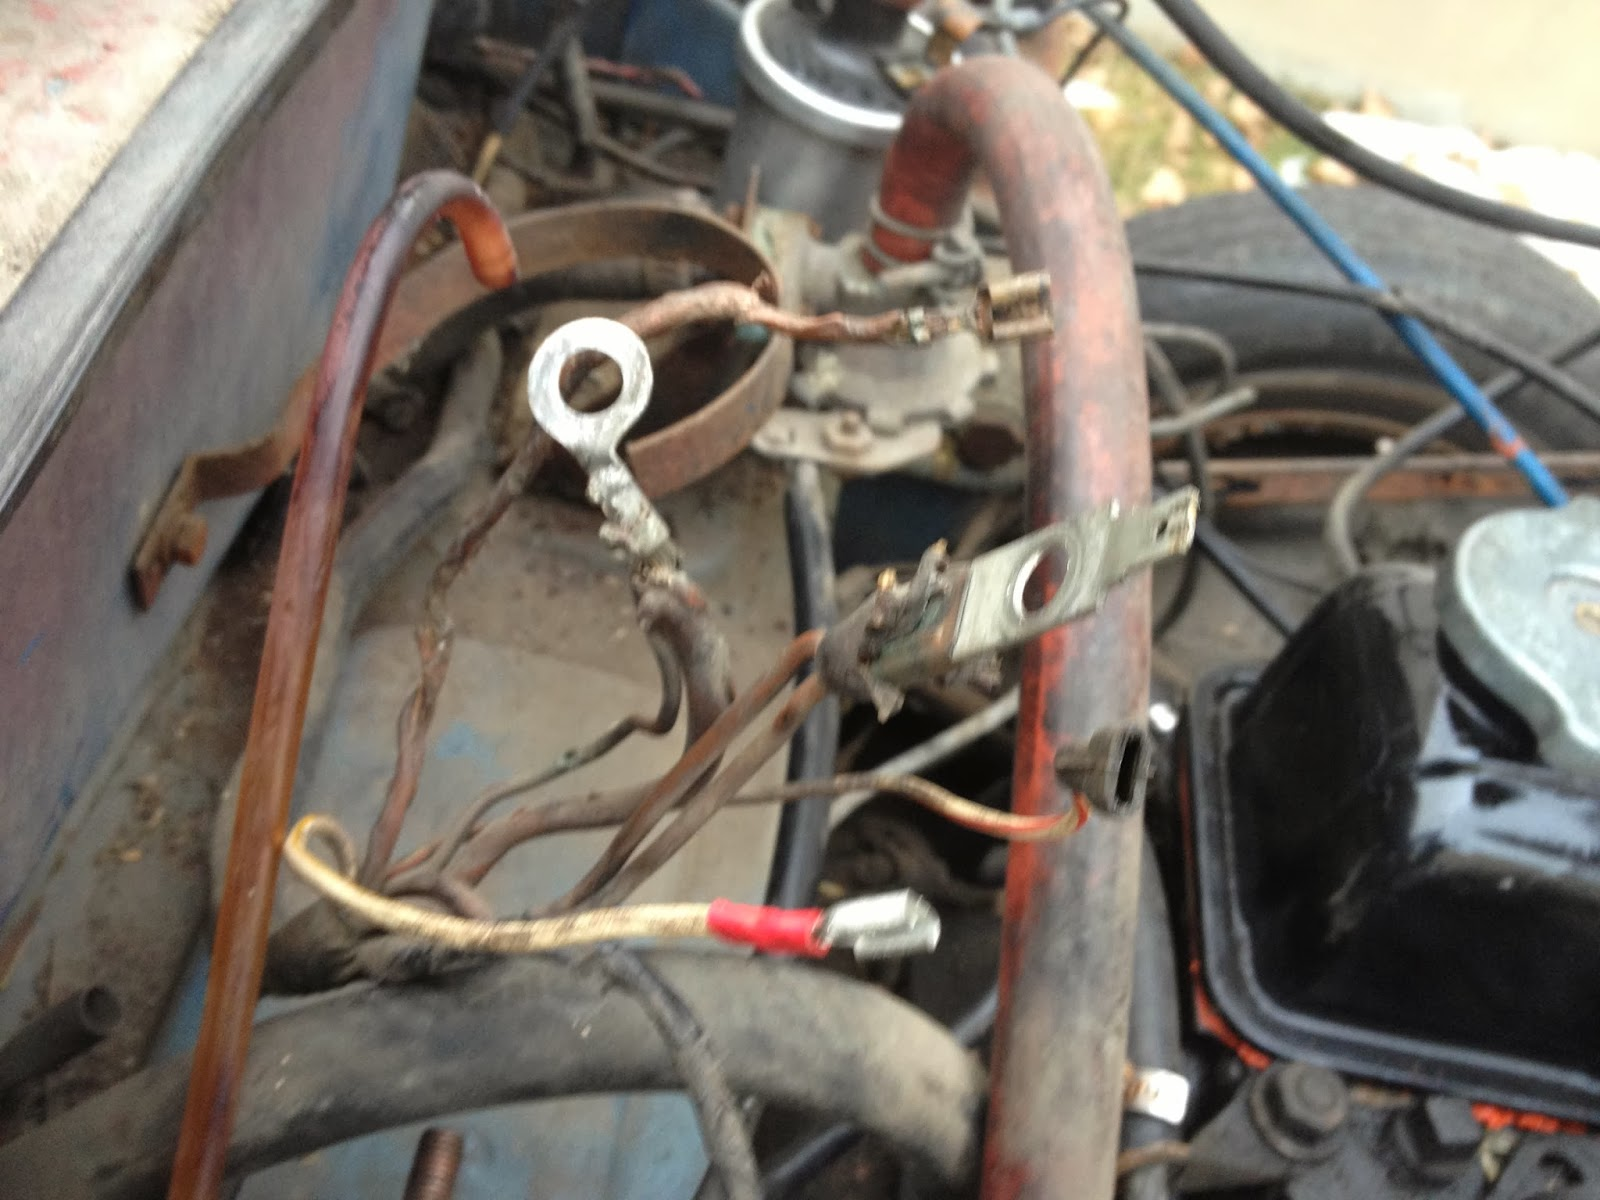 Wiring Woes Continued And Dash Dismantle 1973 Triumph Spitfire